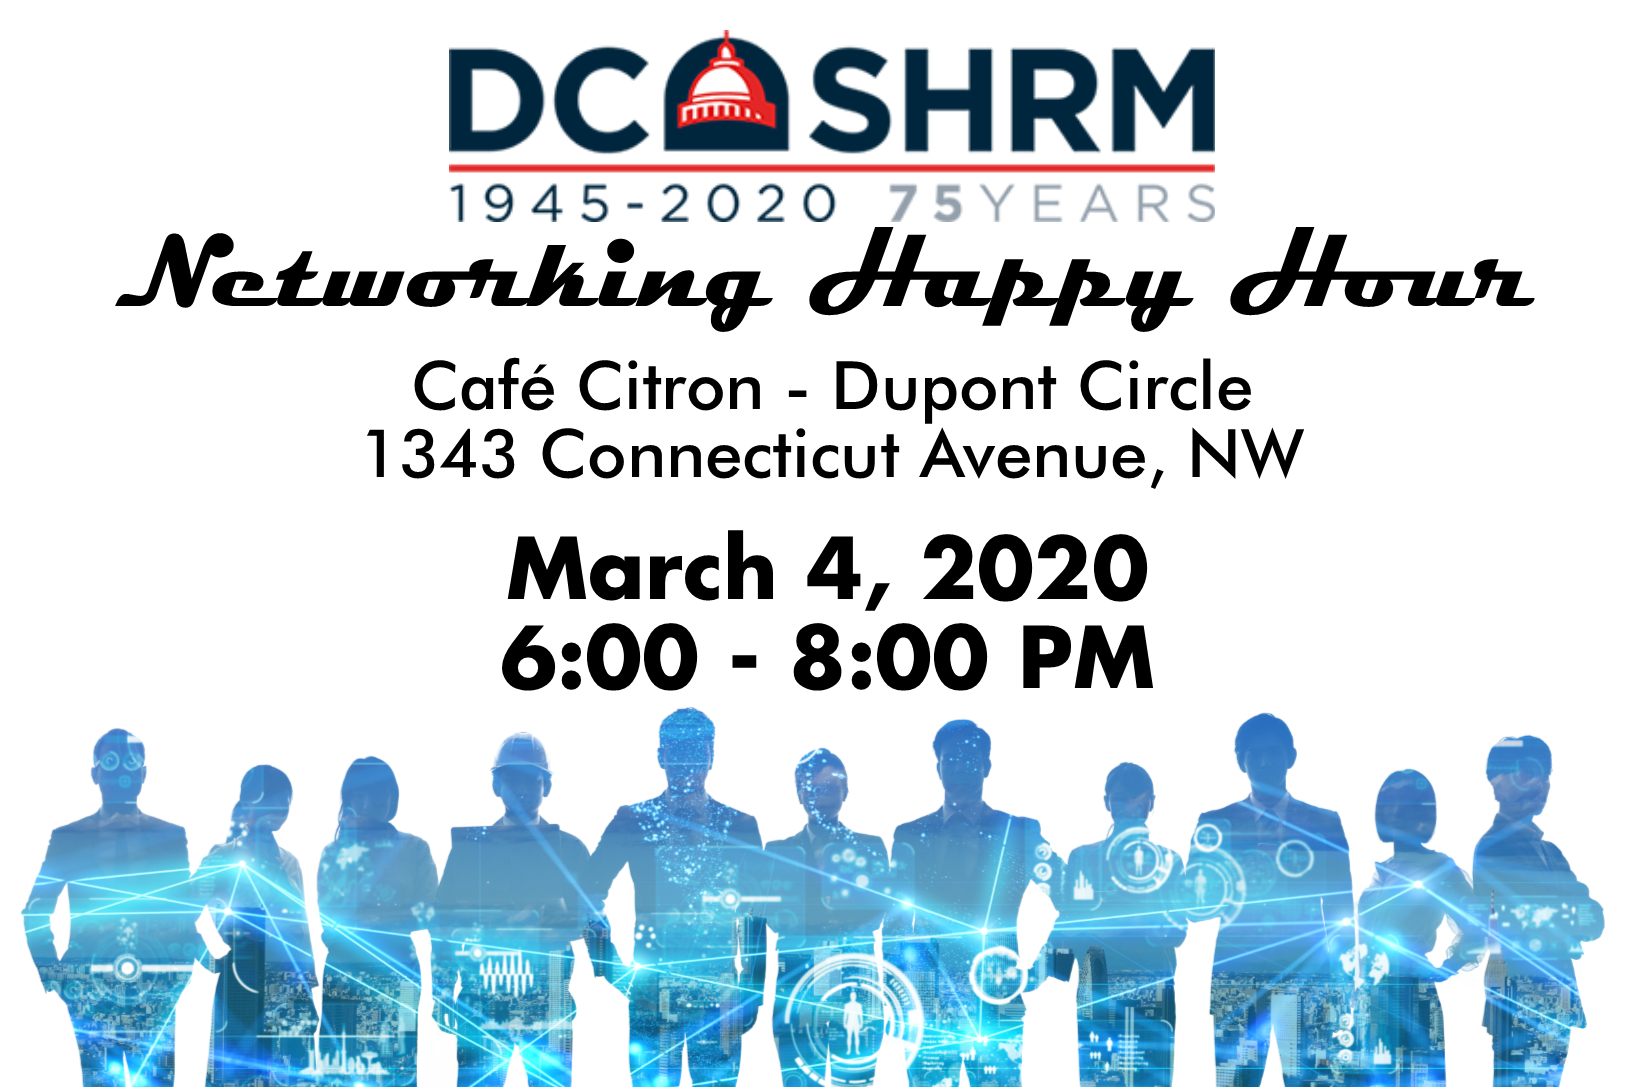 DC SHRM Networking Happy Hour - Café Citron - Dupont Circle 1343 Connecticut Avenue, NW - March 4, 2020 6:00 - 8:00 PM